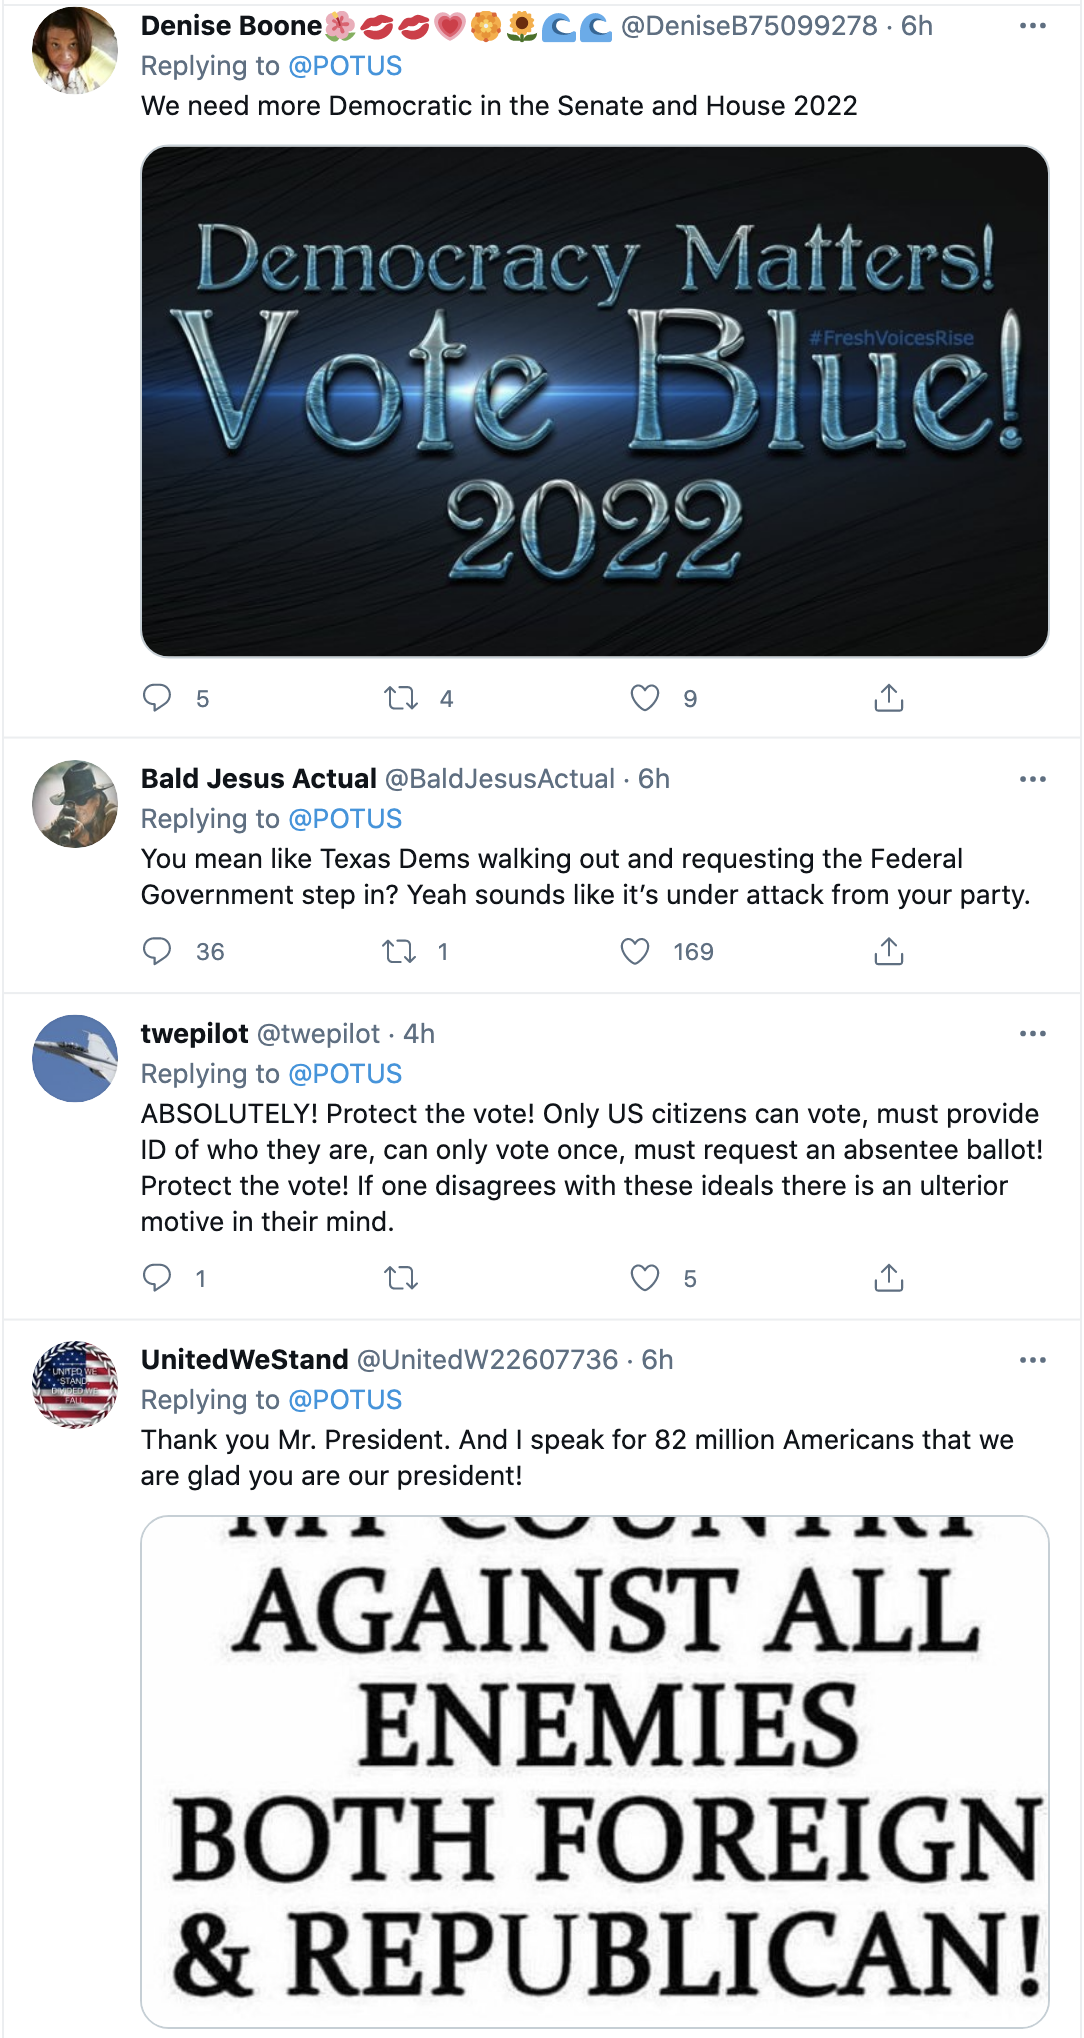 Screen-Shot-2021-06-02-at-2.52.58-PM Biden Pushes For Power Move To Protect Voting From GOP Traitors Corruption Featured National Security Politics Top Stories